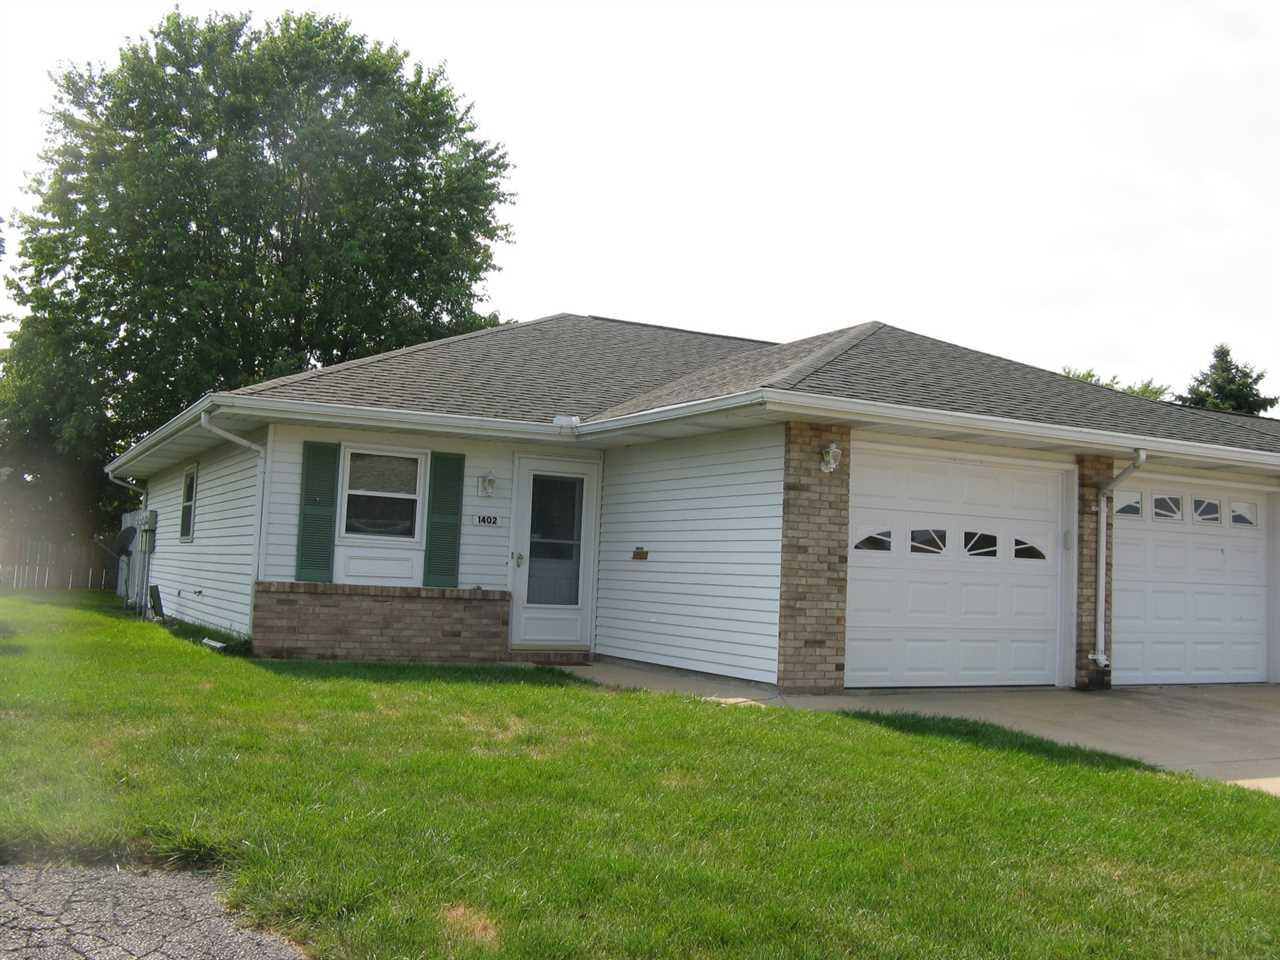 1402 Berkley Circle Mishawaka, IN 46544